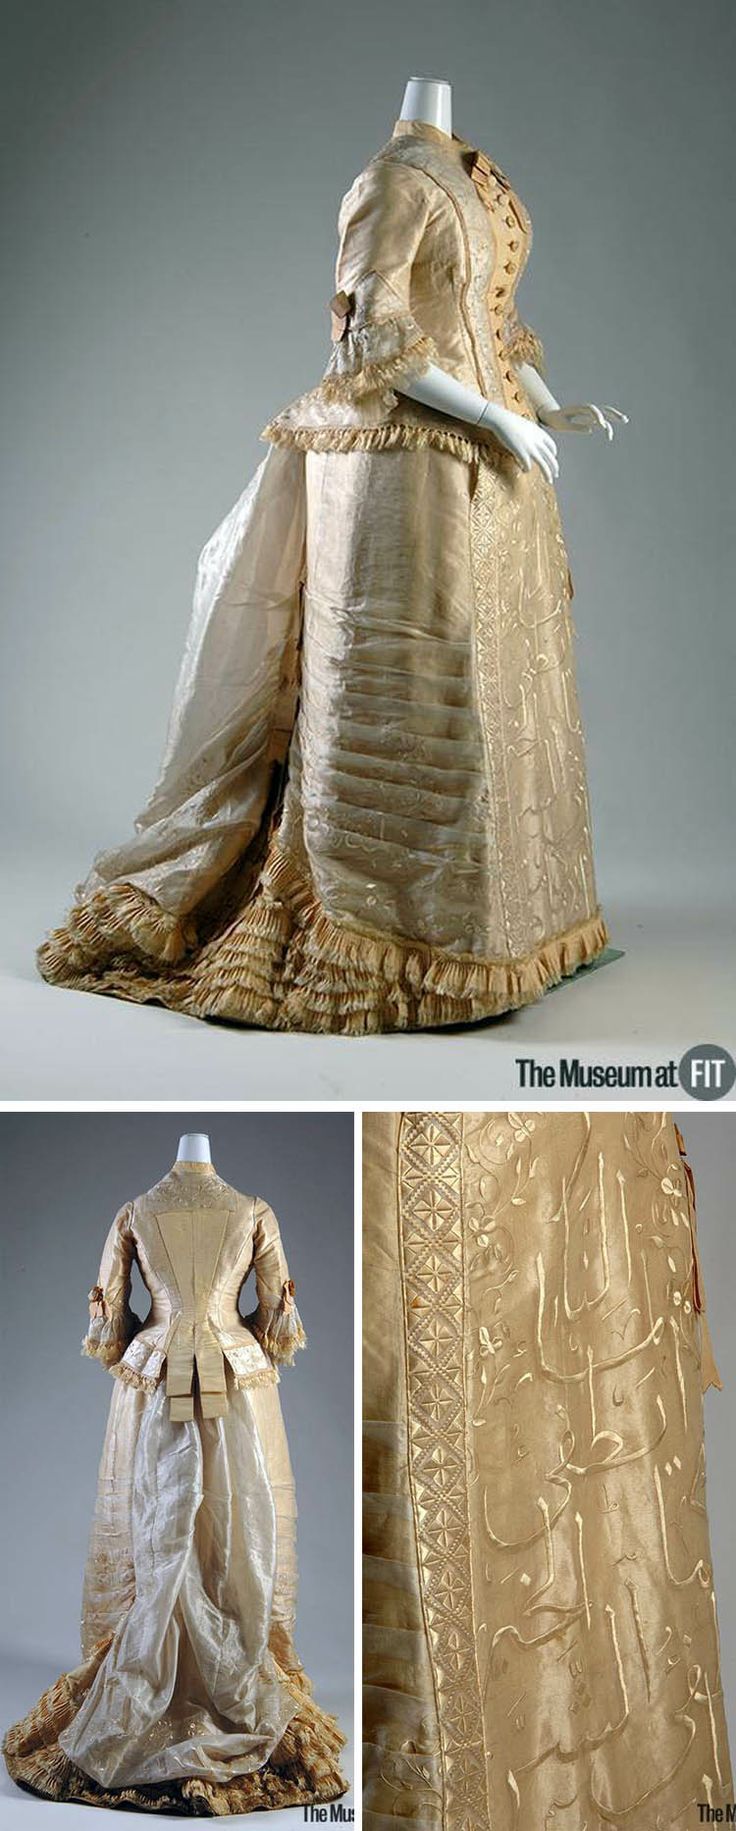 Dress, Mme. Hardy, French, ca. 1877. Cream silk organza and silk faille with silk fringe and chiffon. This two-piece dress consists of a high neck, boned bodice, and a matching, trained skirt hand-embroidered with Arabic characters. Museum of the Fashion Institute of Technology